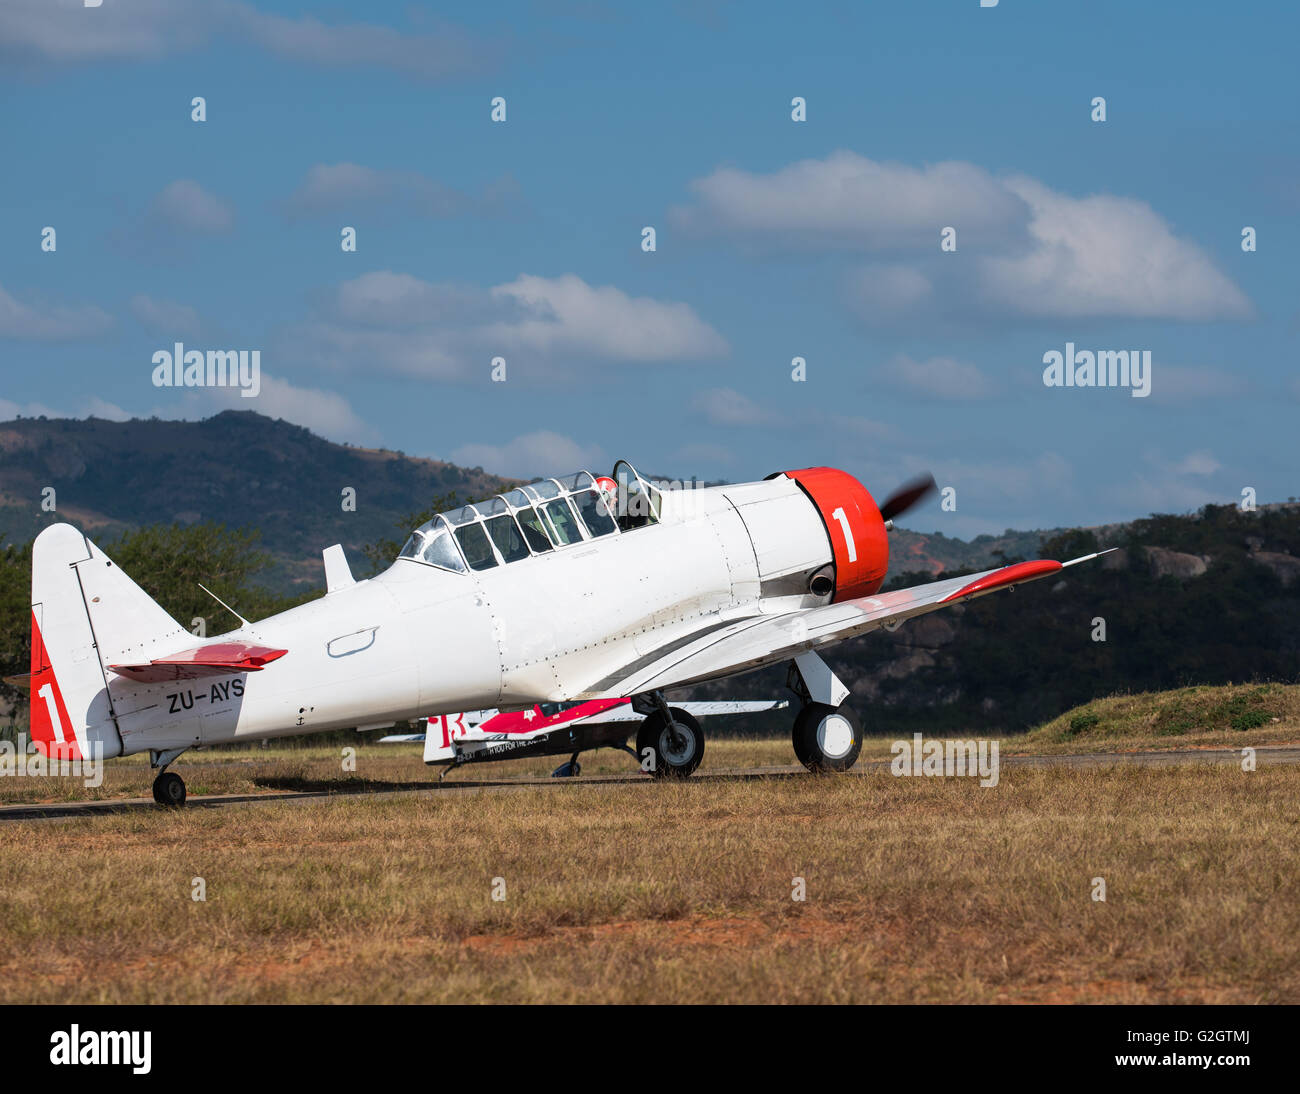 Harvard and pilot on the runway at the Lowveld Airshow - Stock Image